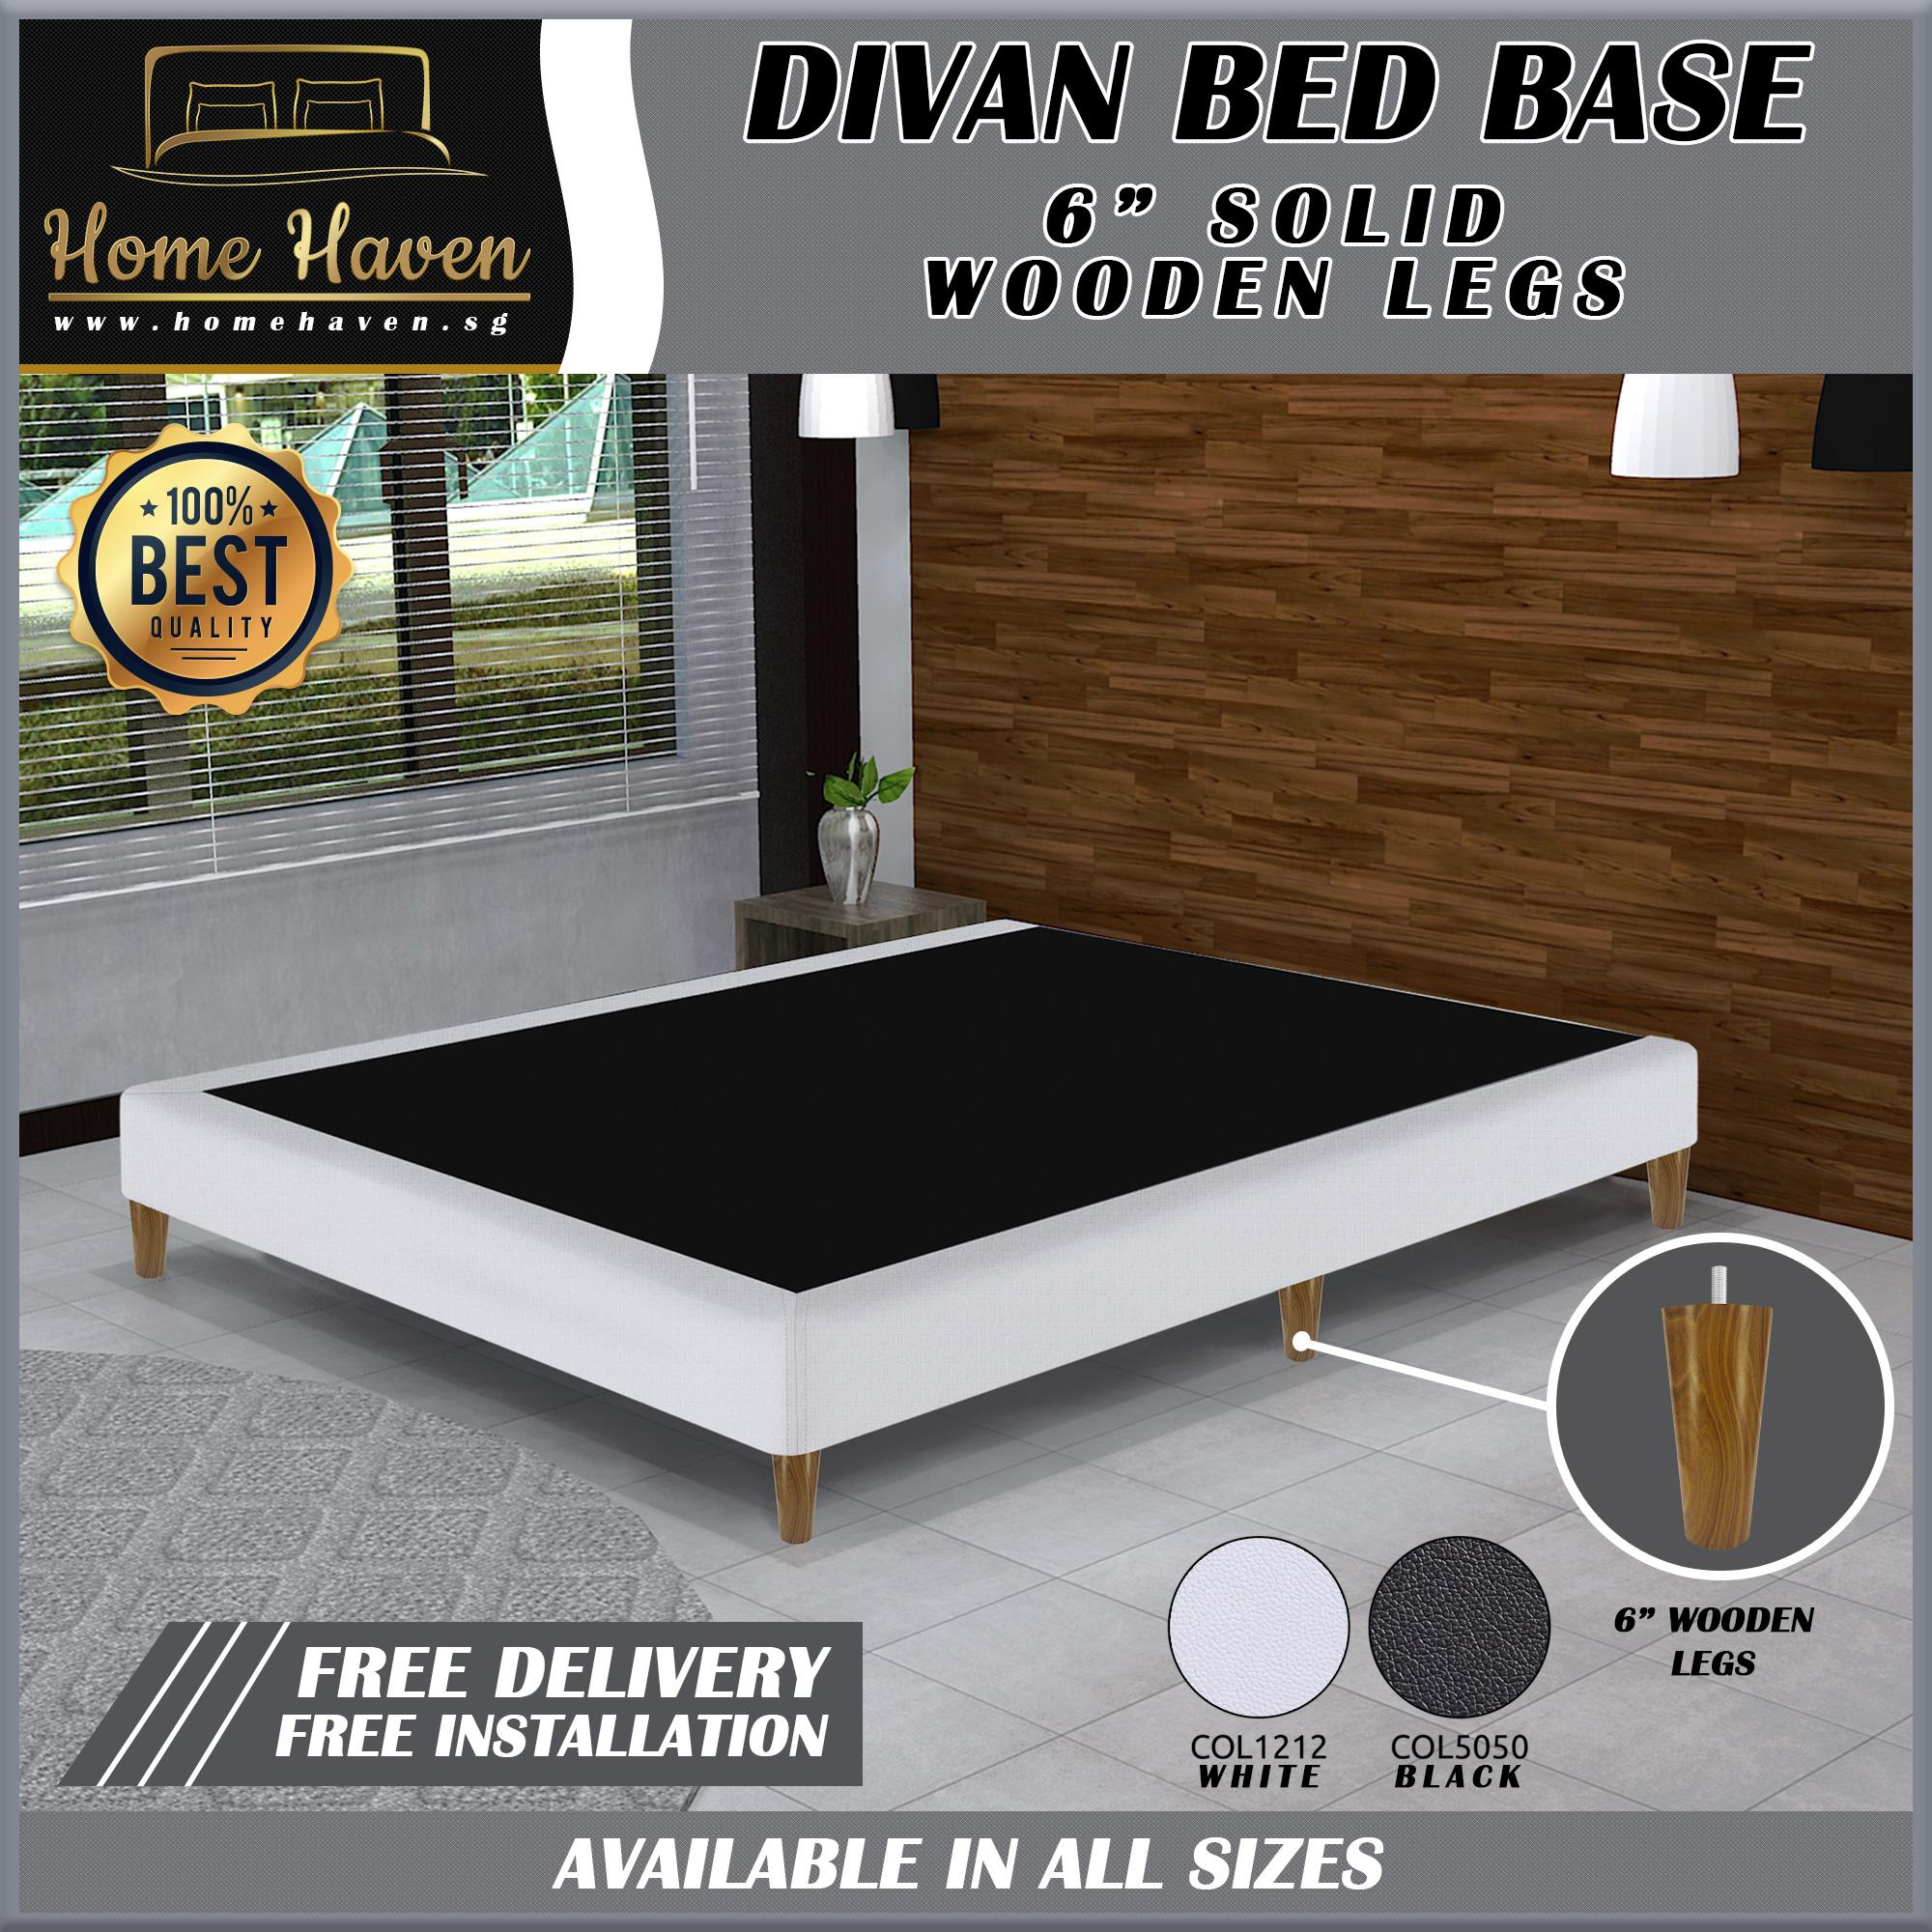 DIVAN BED BASE WITH 6 INCHES WOODEN LEGS